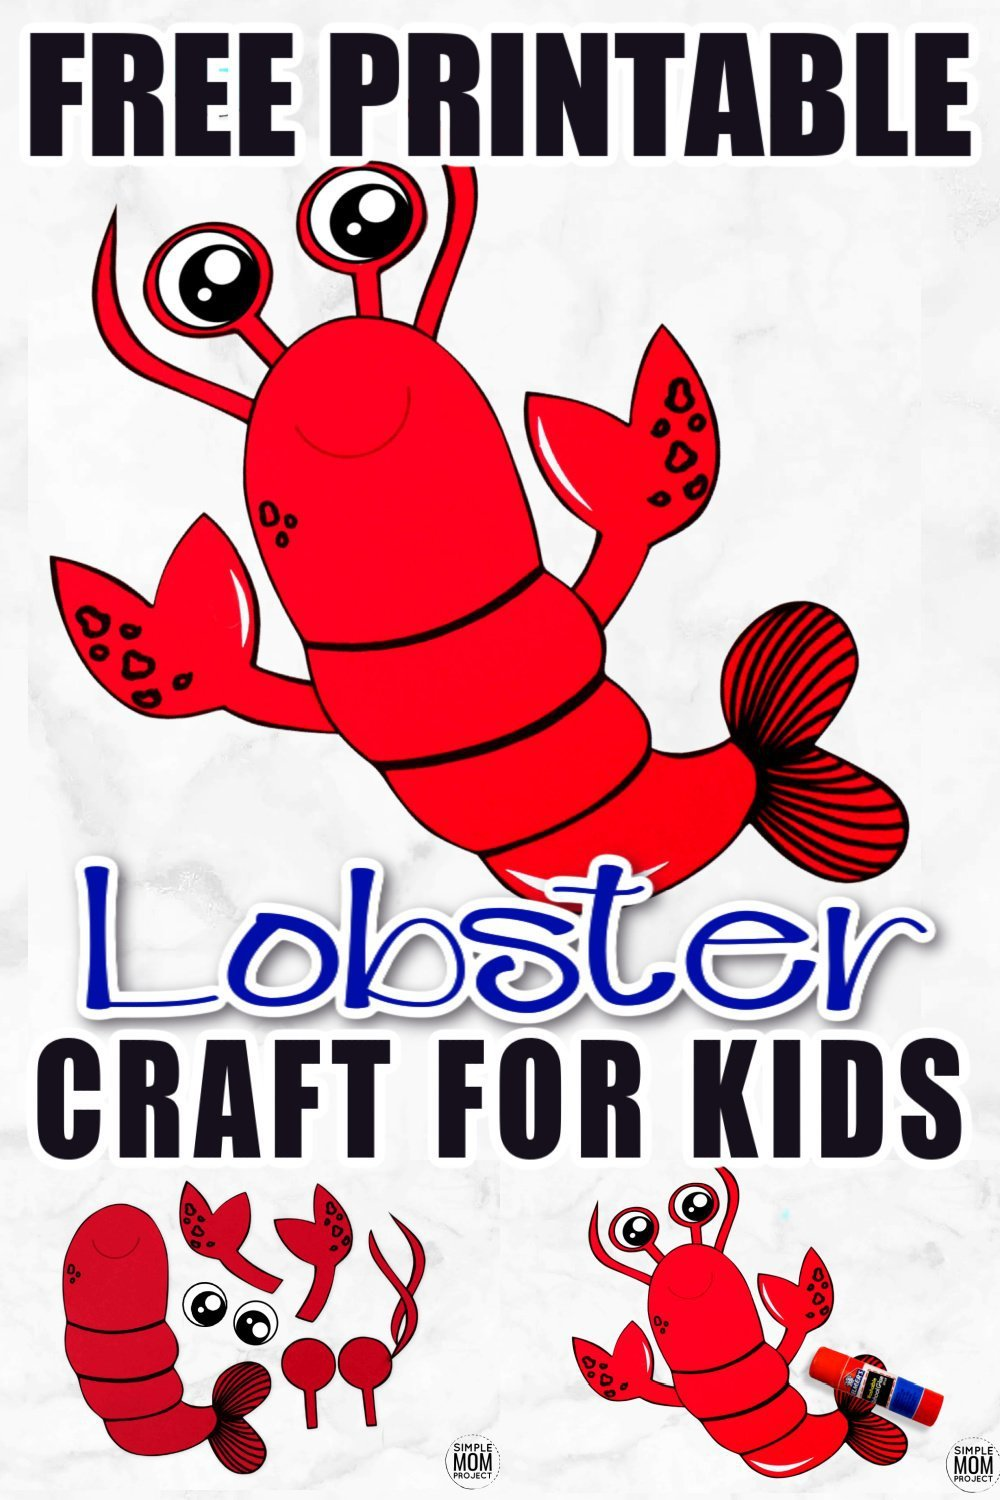 Teaching the letter L or exploring the ocean with your toddler or preschooler? Use this free printable lobster template and build your own cut and paste lobster friend! He is the perfect, easy, under the sea art project to do this summer with your kids. #lobster #lobstercrafts #oceananimals #oceananimalcrafts #SimpleMomProject